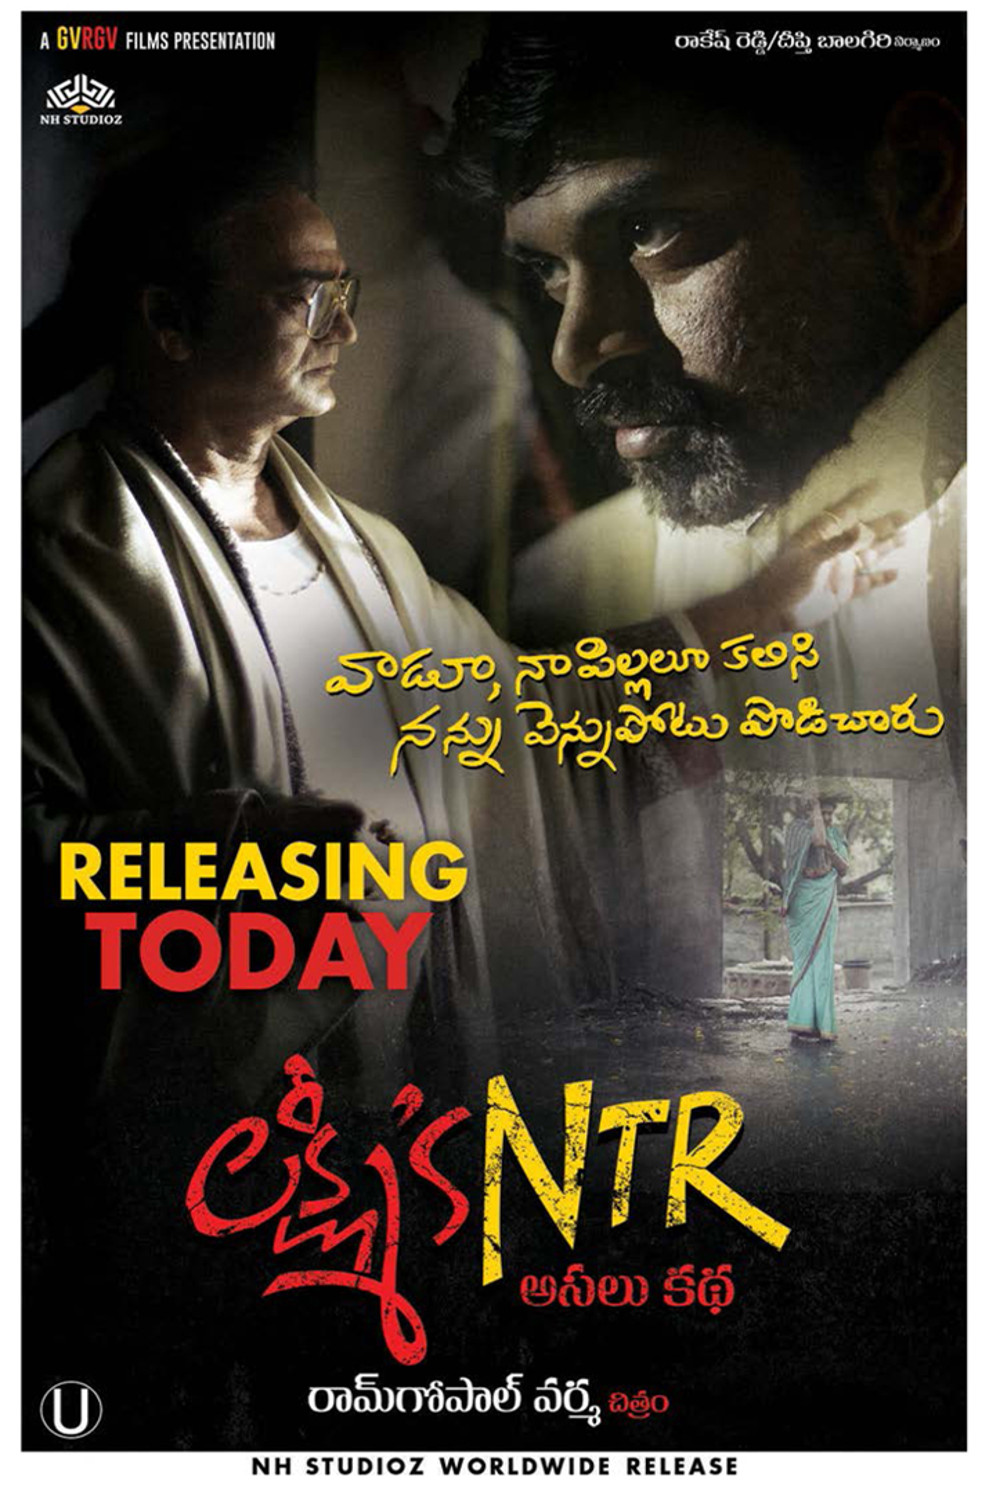 Lakshmi's NTR Movie Releasing Today Posters